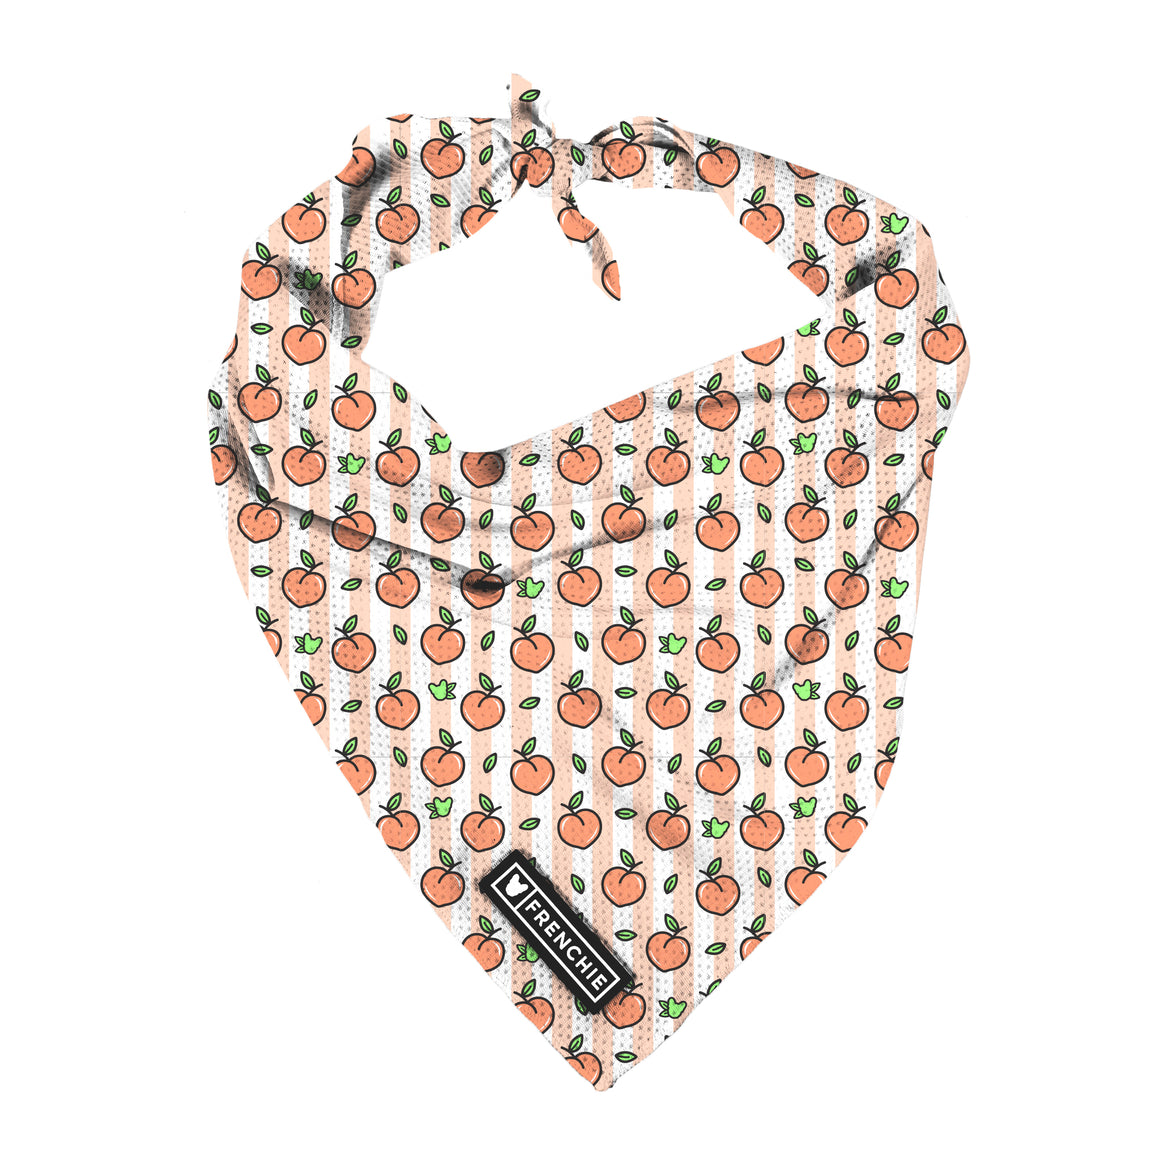 Frenchie Cooling Bandana- Just Peachy - Frenchie Bulldog - Shop Harnesses for French Bulldogs - Shop French Bulldog Harness - Harnesses for Pugs